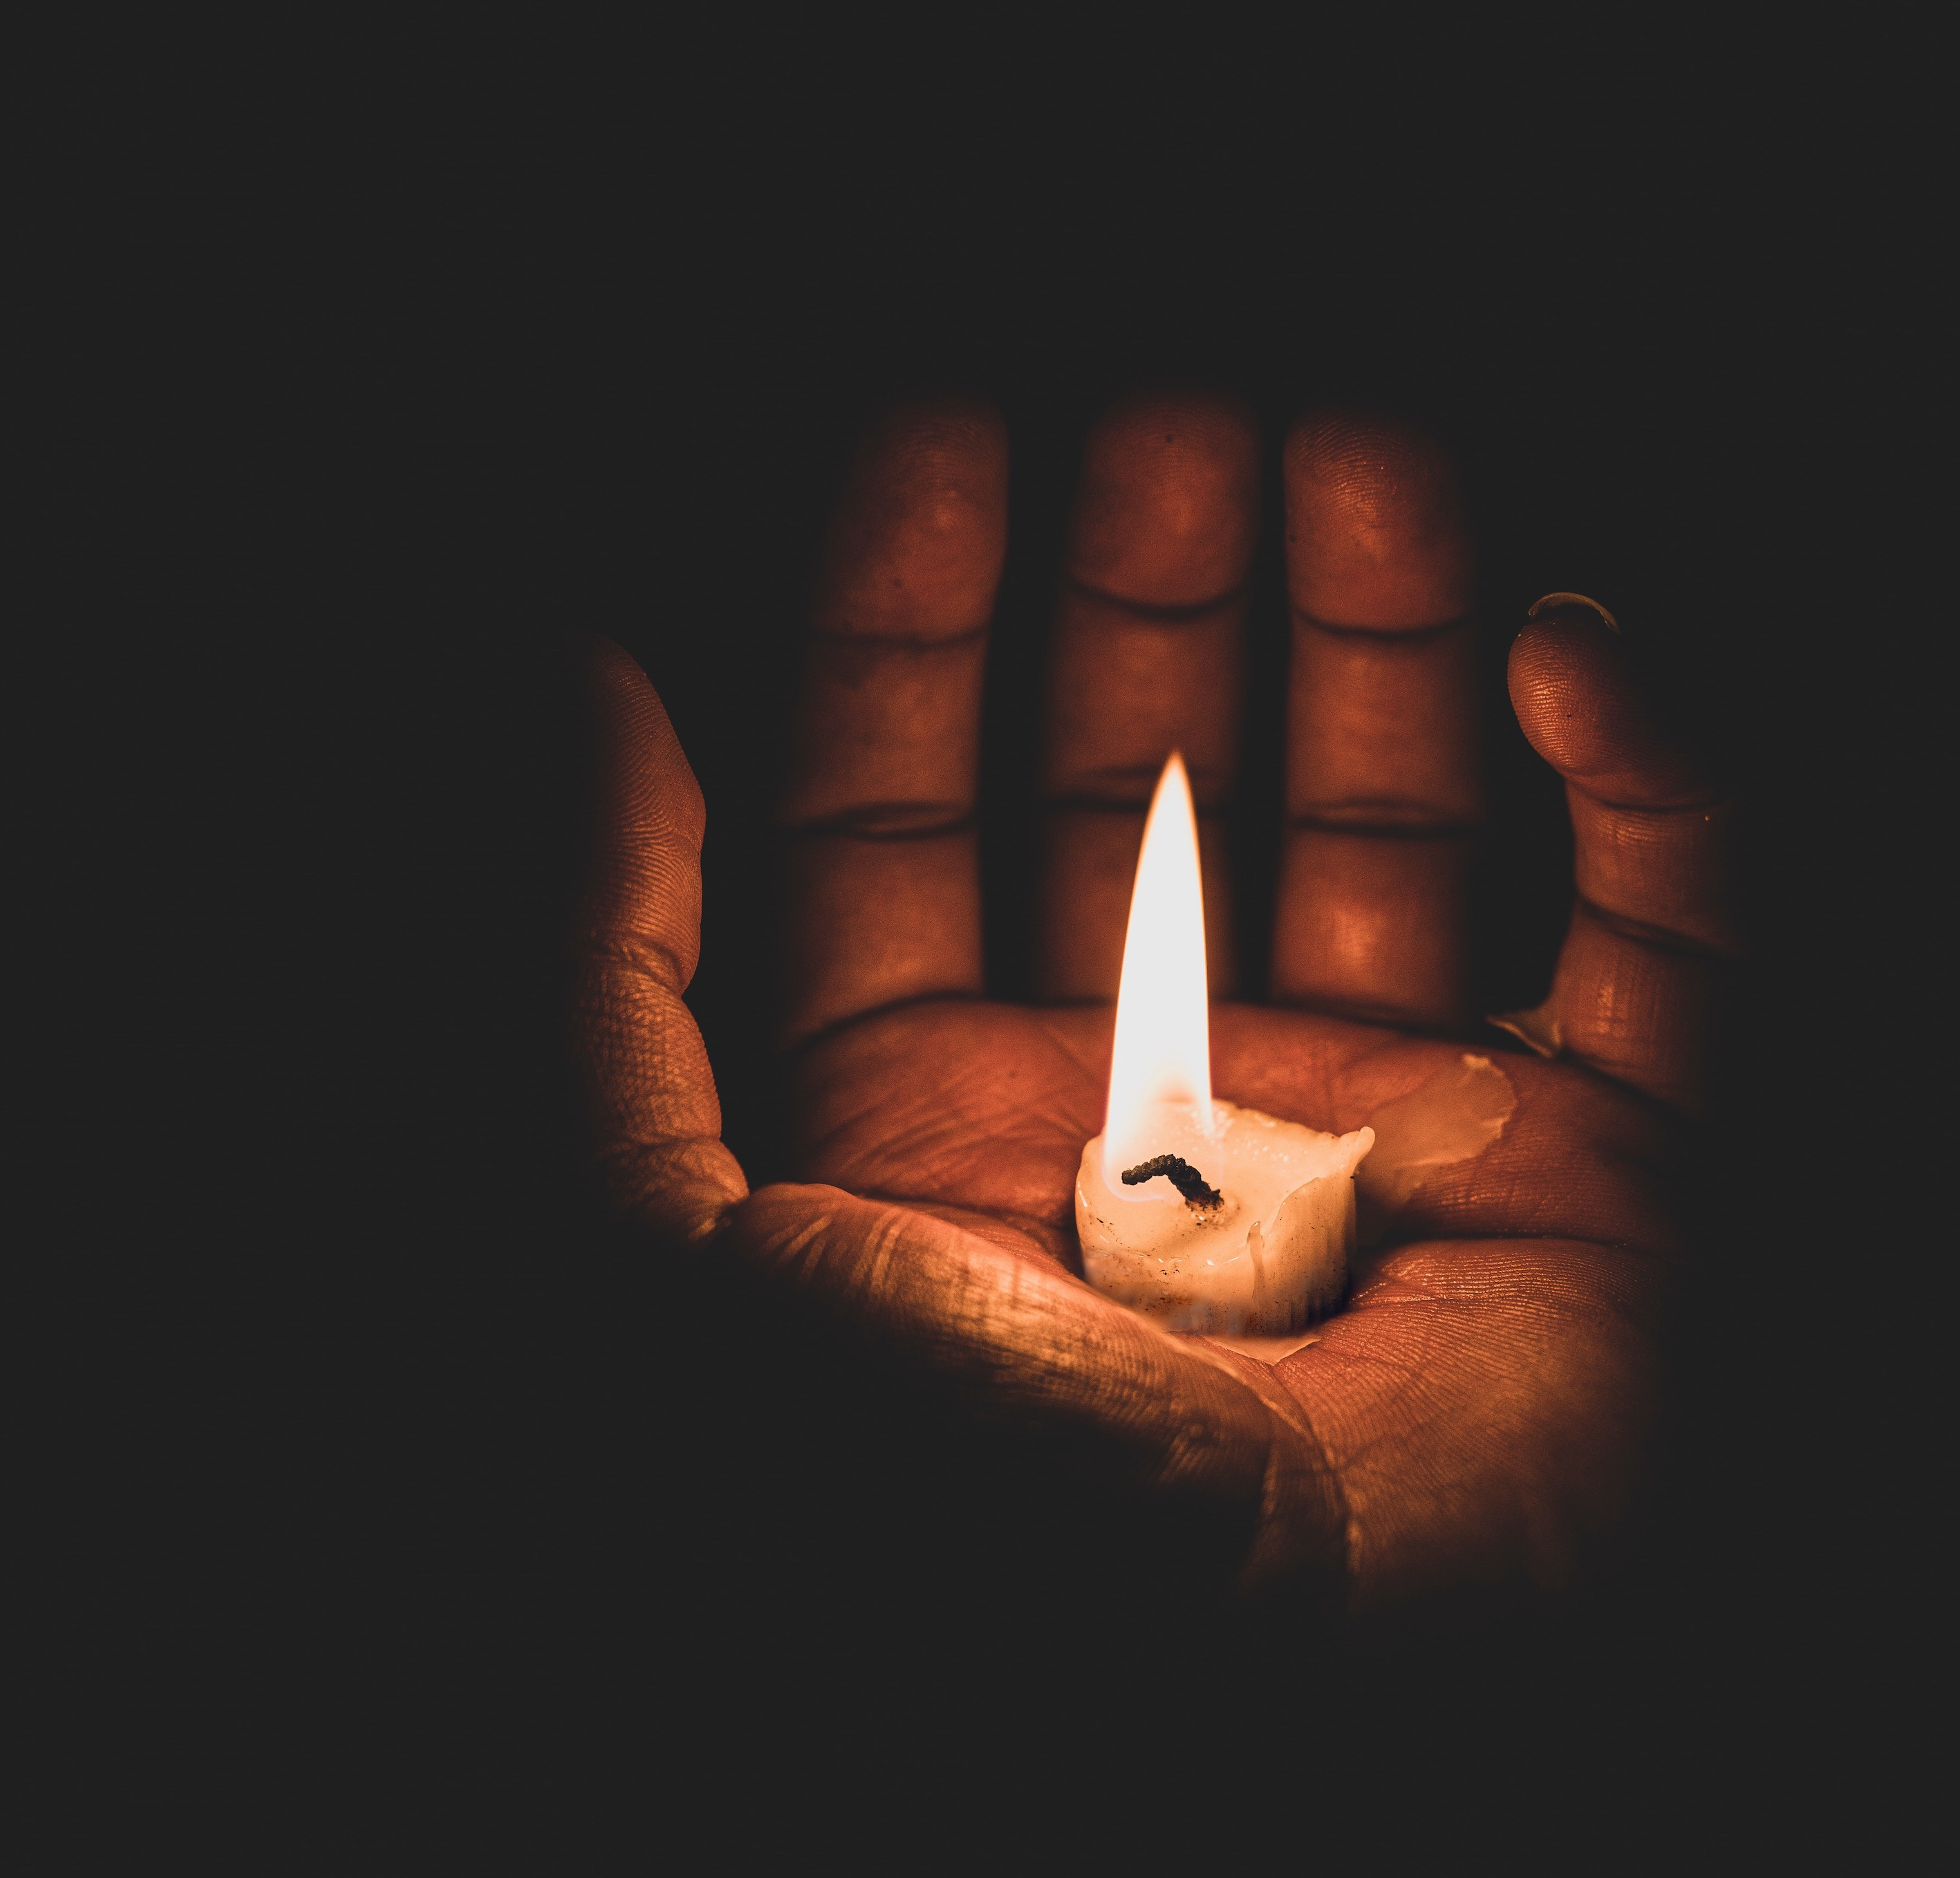 Candle by Eyasu Etsub on Unsplash